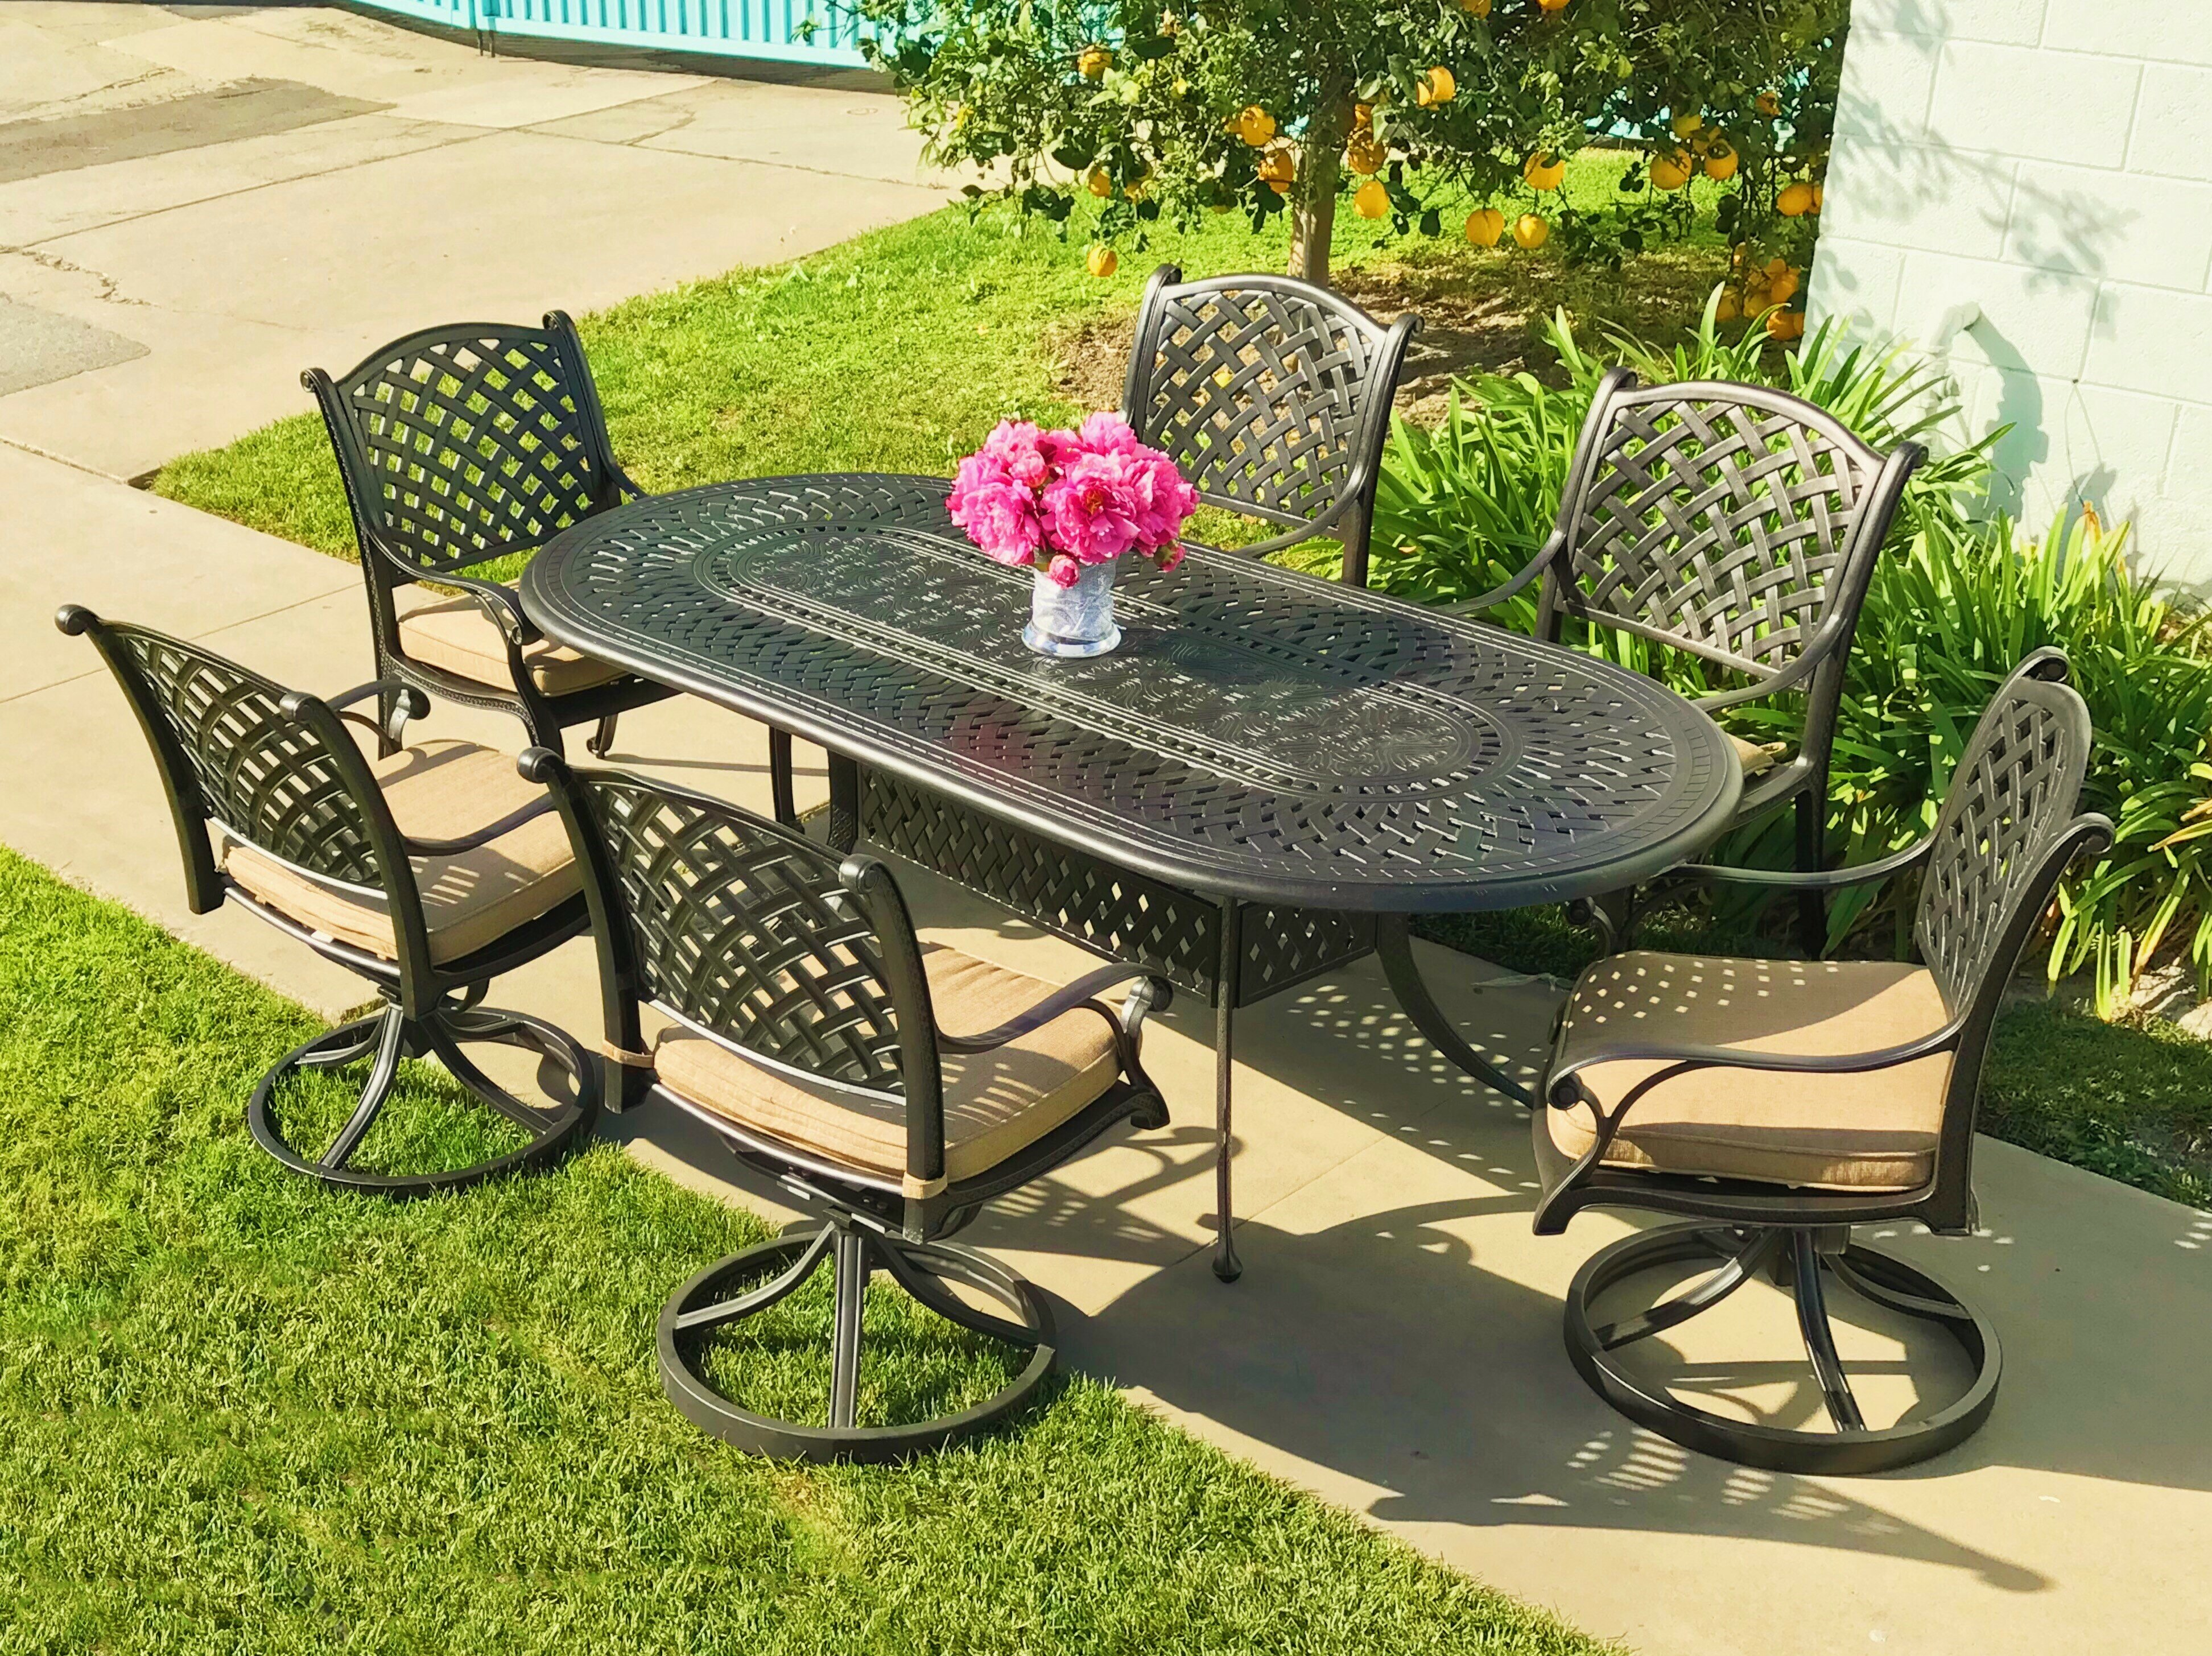 Darby Home Co Beadle Oval Cast Aluminum 7 Piece Dining Set With Cushions Reviews Wayfair